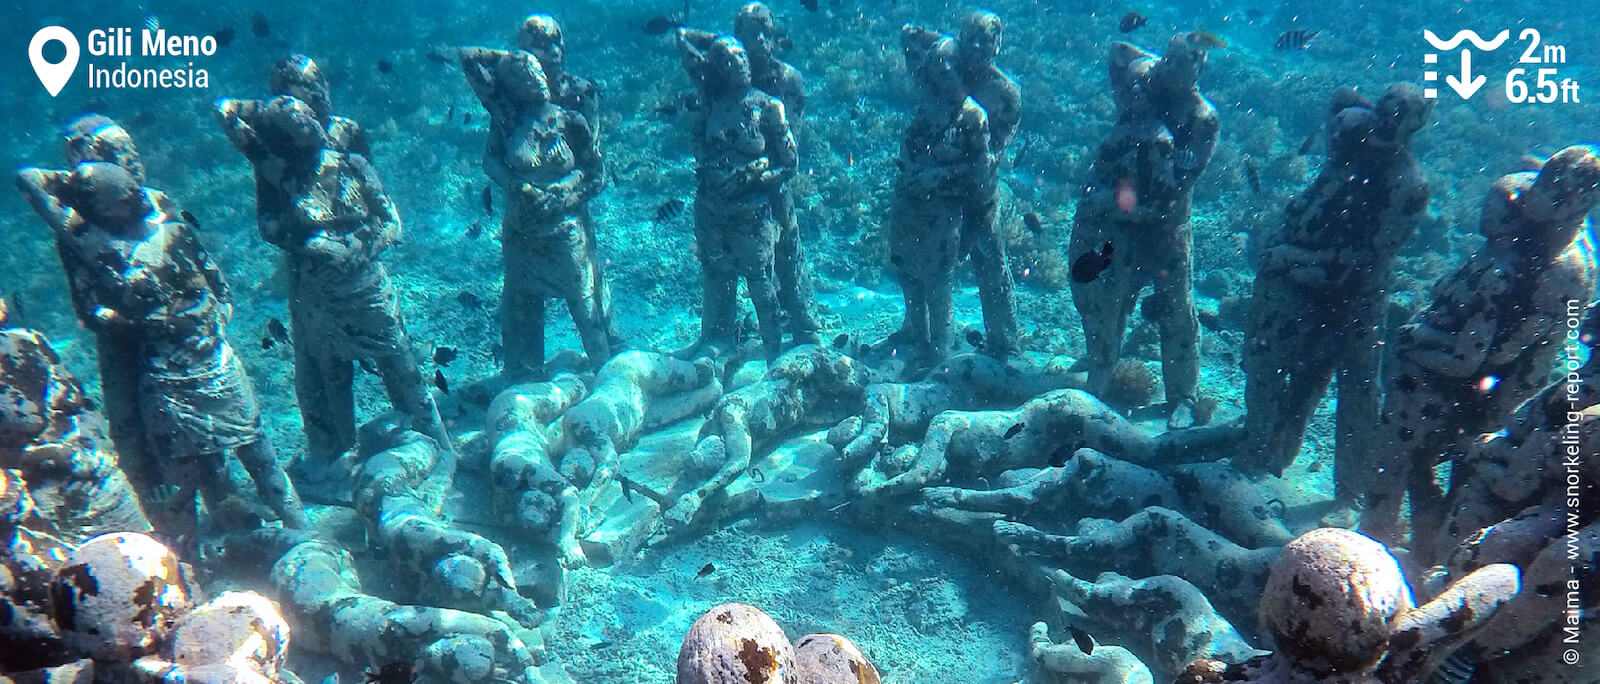 """Nest"" underwater statues, sitting only 4m deep, is a perfect underwater photo setting."